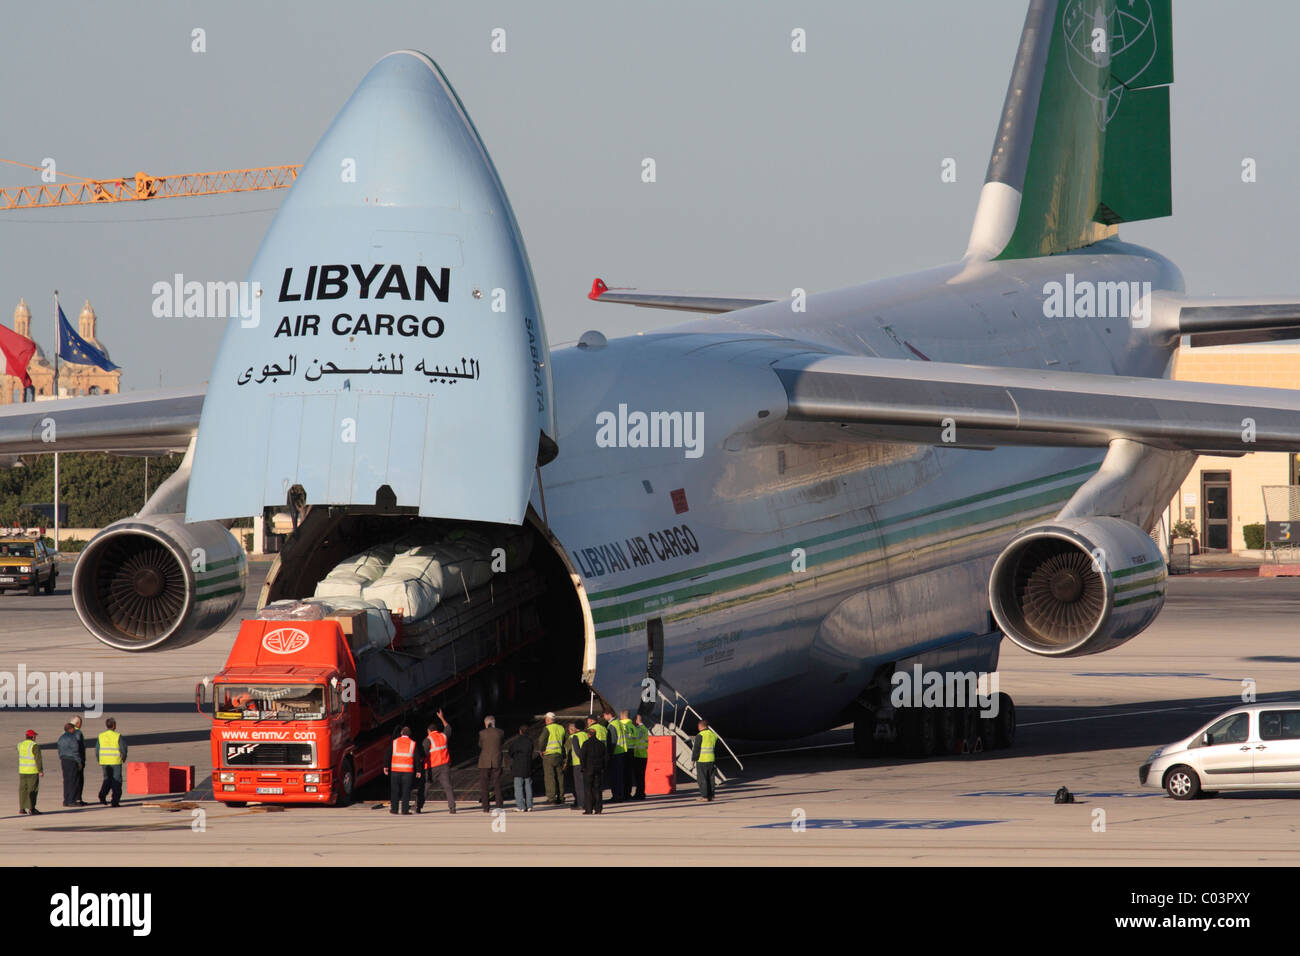 Loading cargo on board a Libyan Air Cargo Antonov An-124 by reversing a trailer truck into the aircraft - Stock Image